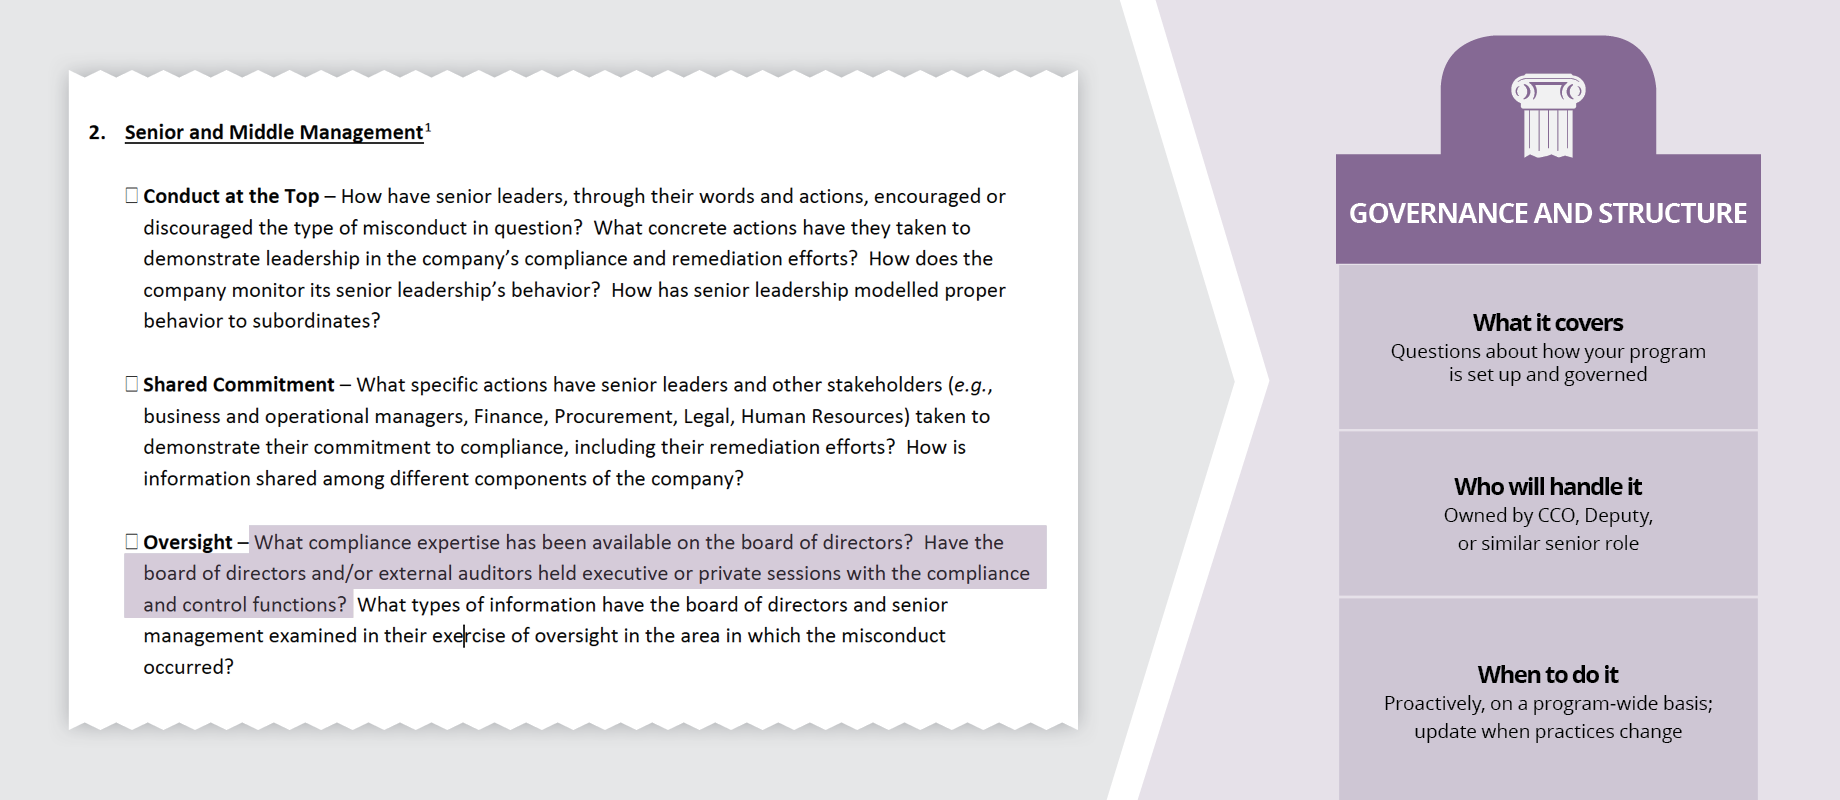 Department of Justice's Evaluation of Corporate Compliance Programs - Highlight of Governance and Structural theme in Senior and Middle Management topic